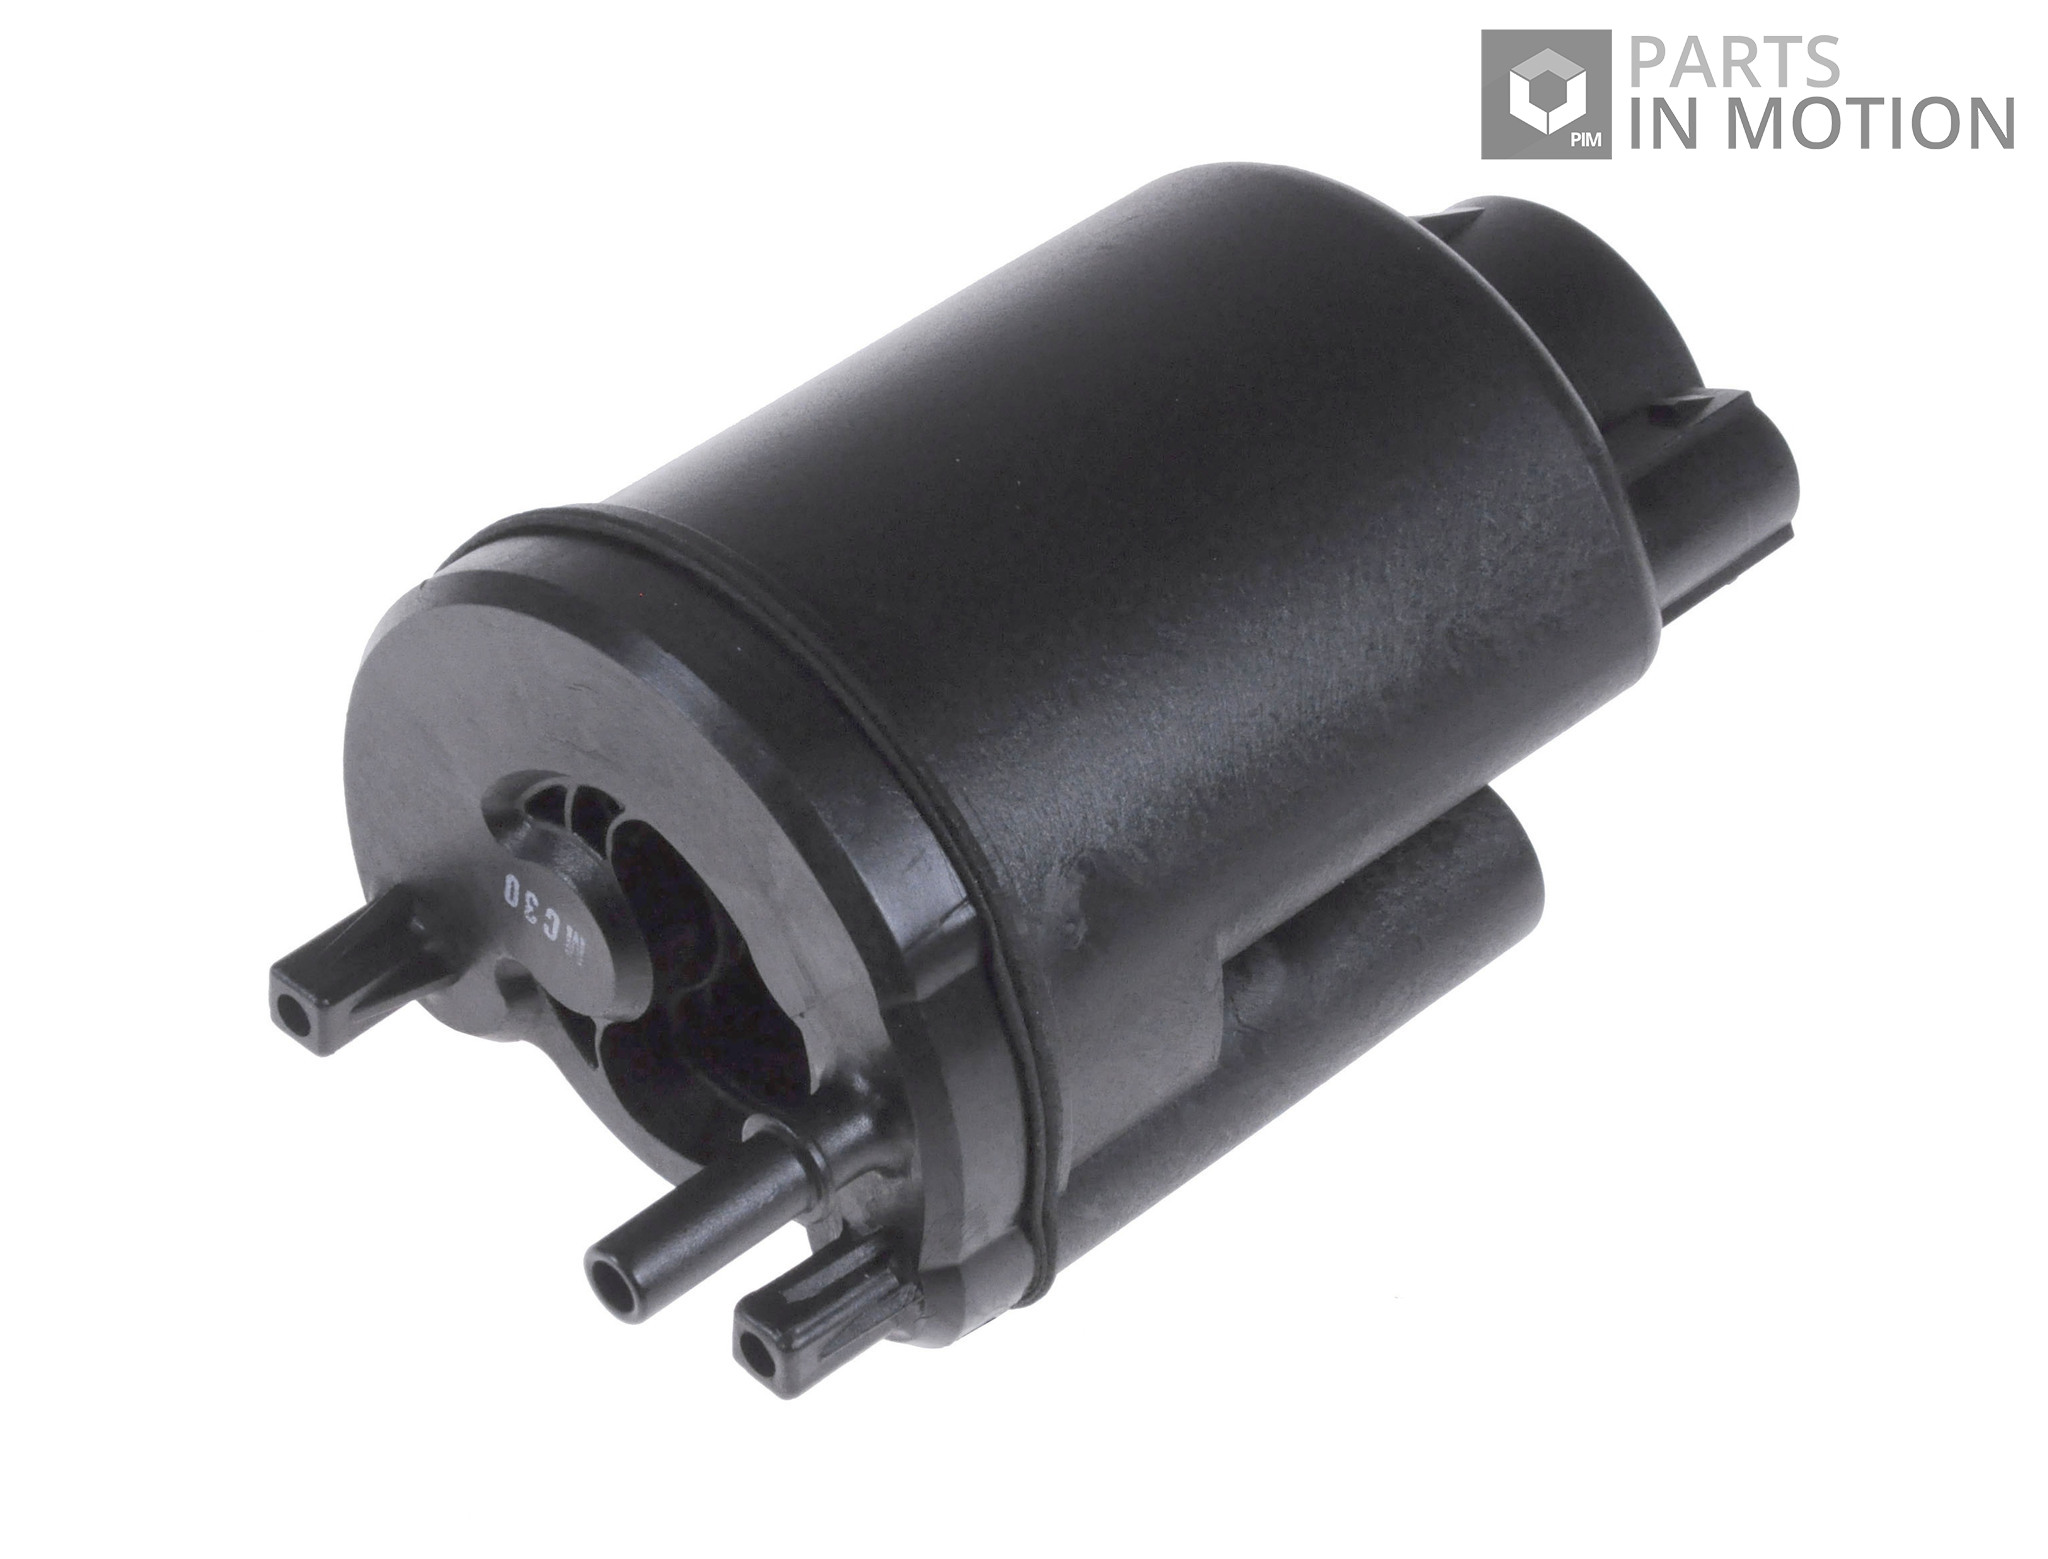 Blue Print Fuel Filter ADG02338, Fuel Filter fits HYUNDAI SONATA ...